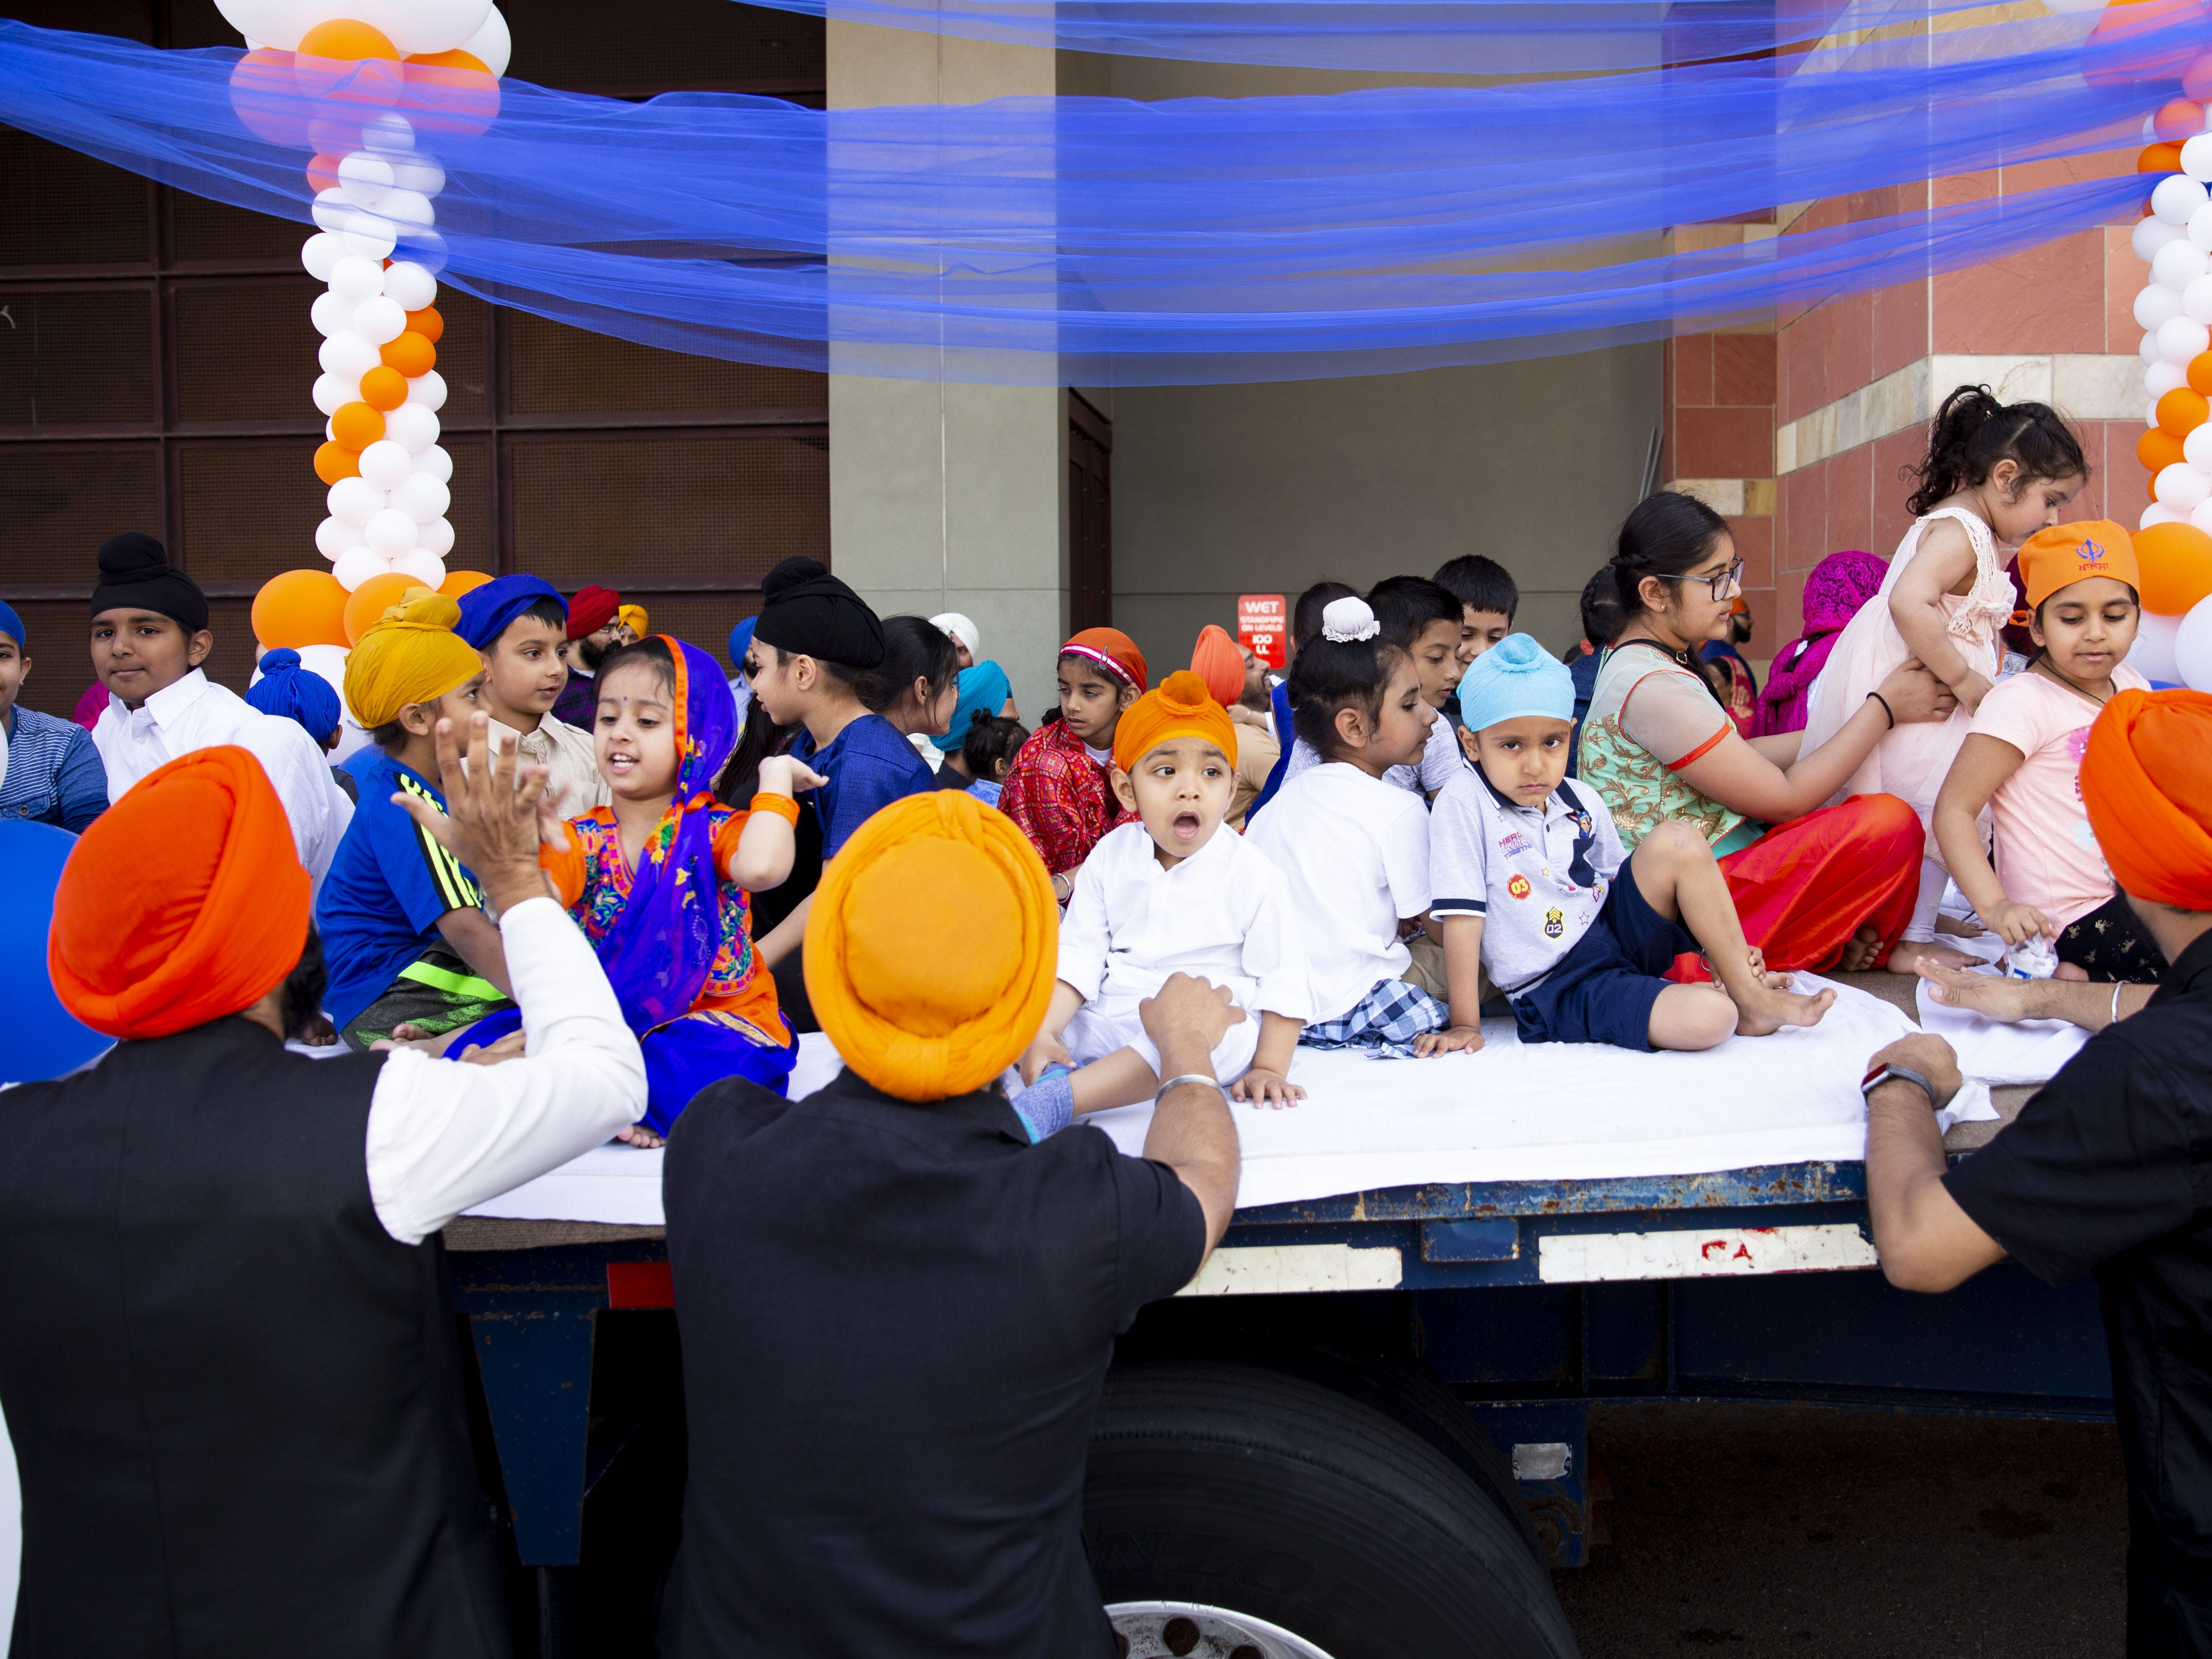 Parents put their children on a float for Nagar Kirtan, a Sikh parade, before it makes its way through the streets of downtown Phoenix on March 24, 2019.